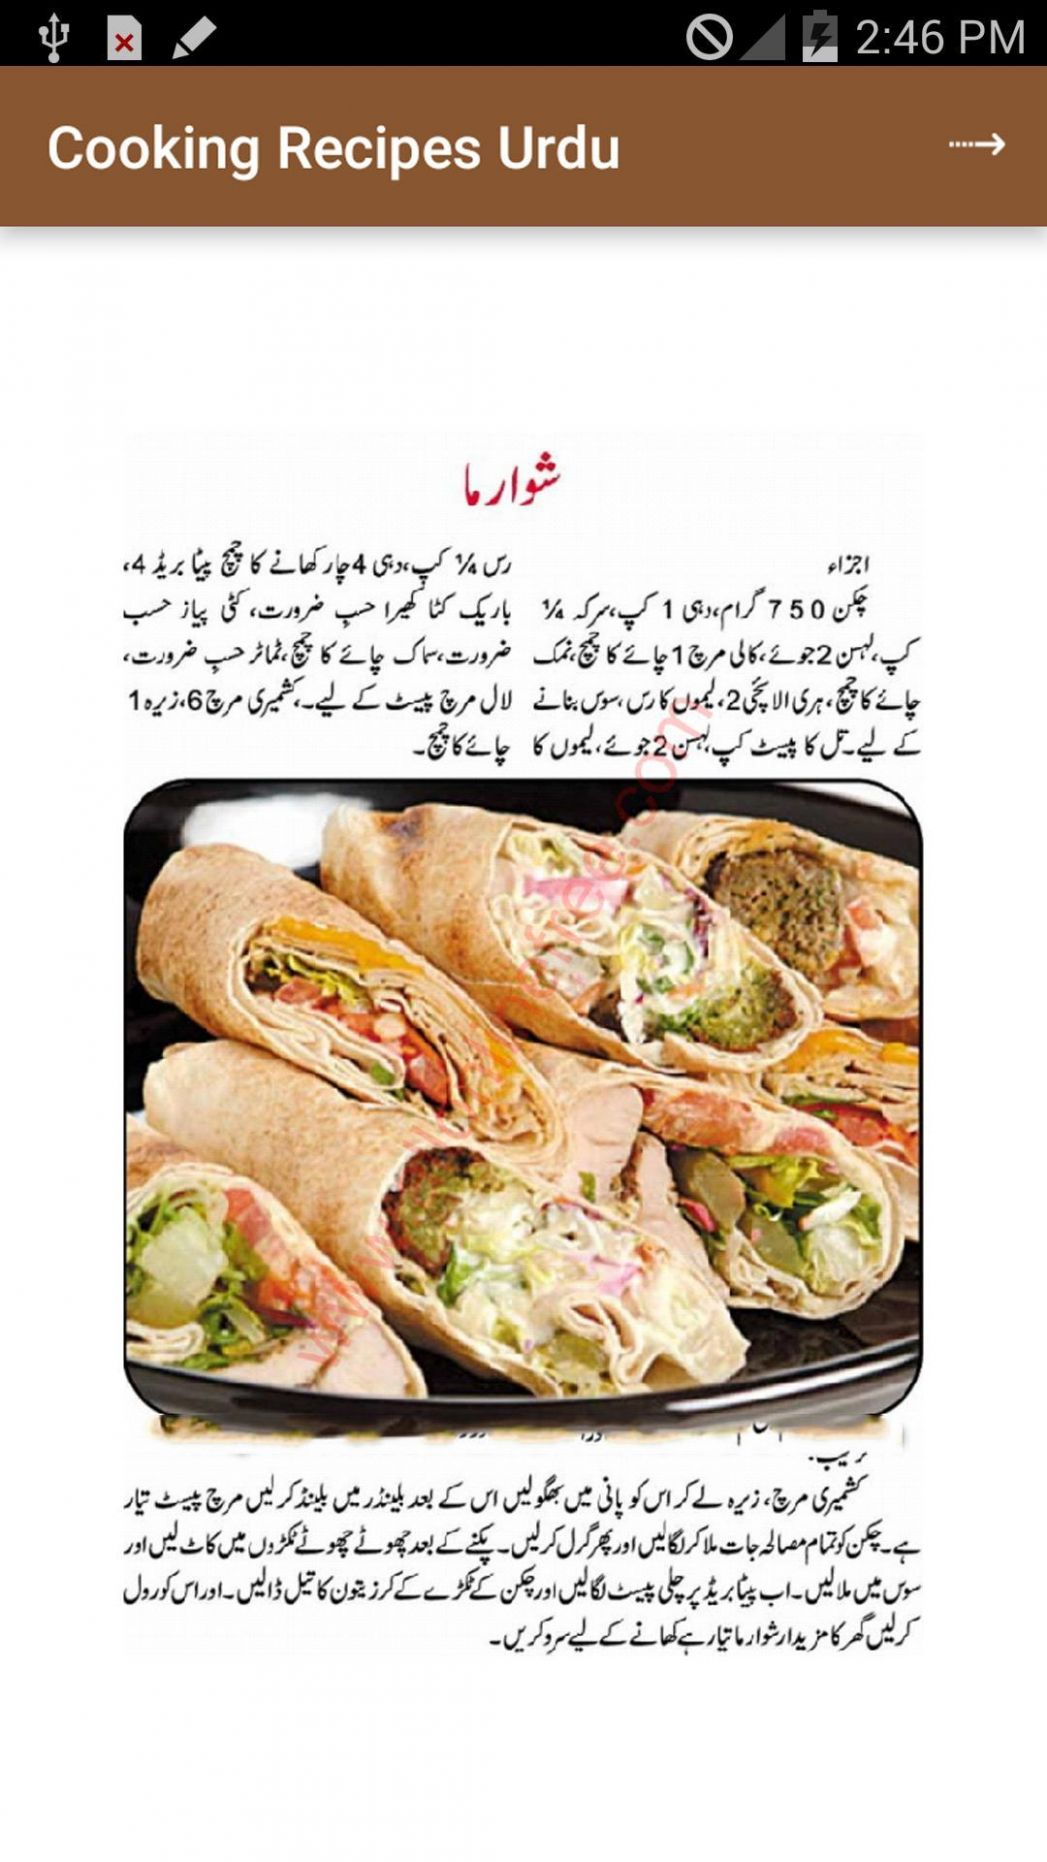 Cooking Recipes in Urdu for Android - APK Download - Cooking Recipes Urdu